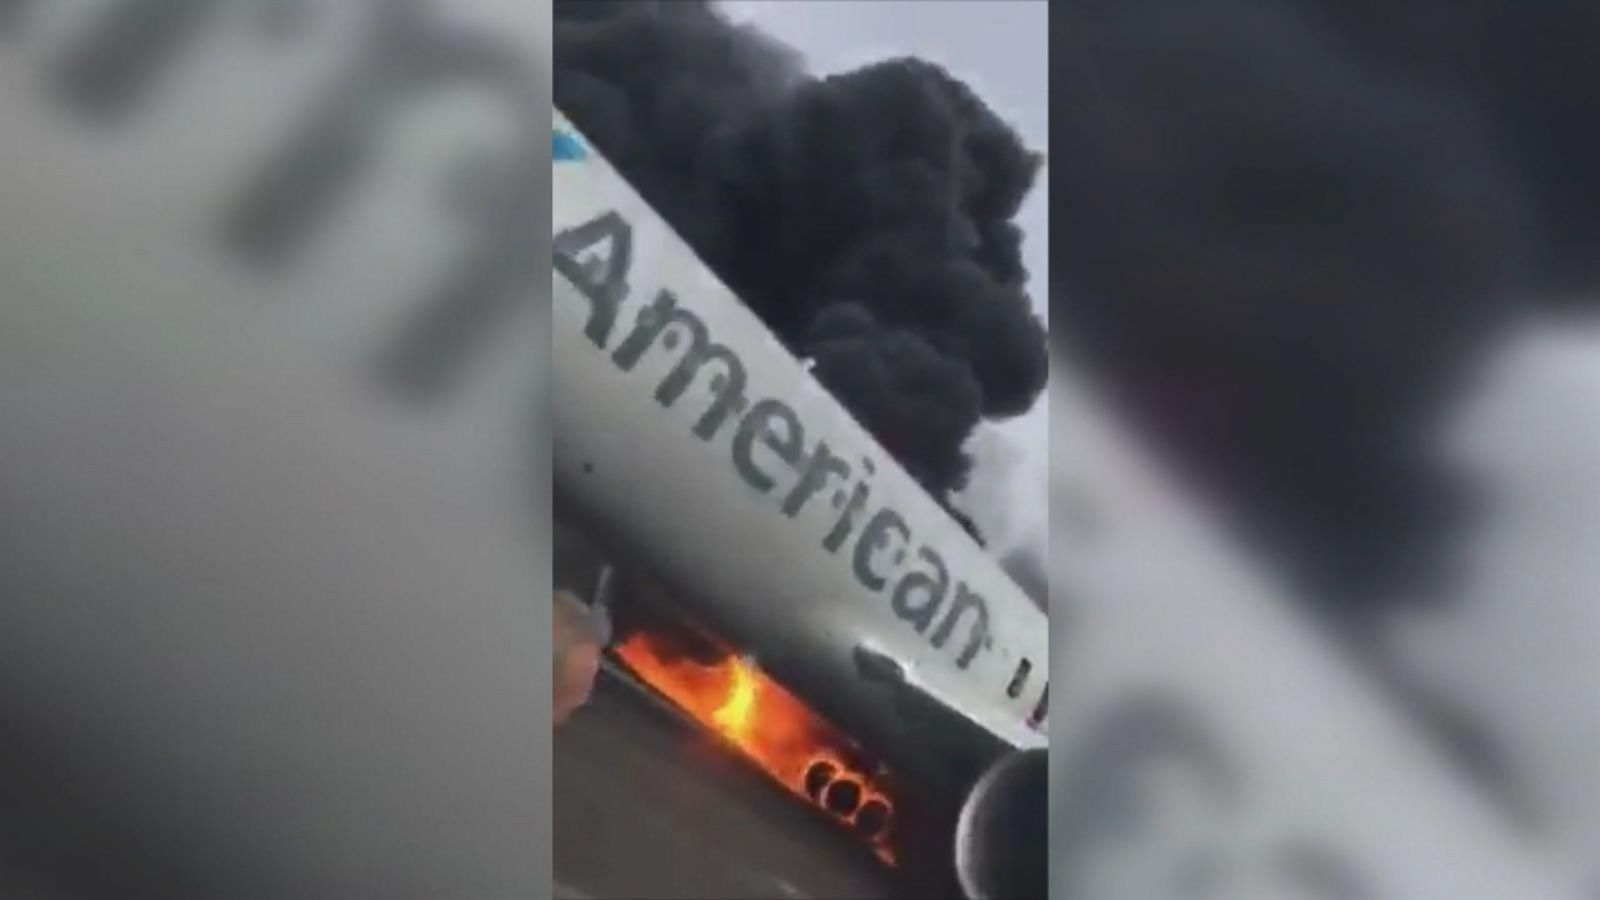 The dramatic video shows screaming passengers as they evacuate the plane at Chicago's O'Hare International Airport.